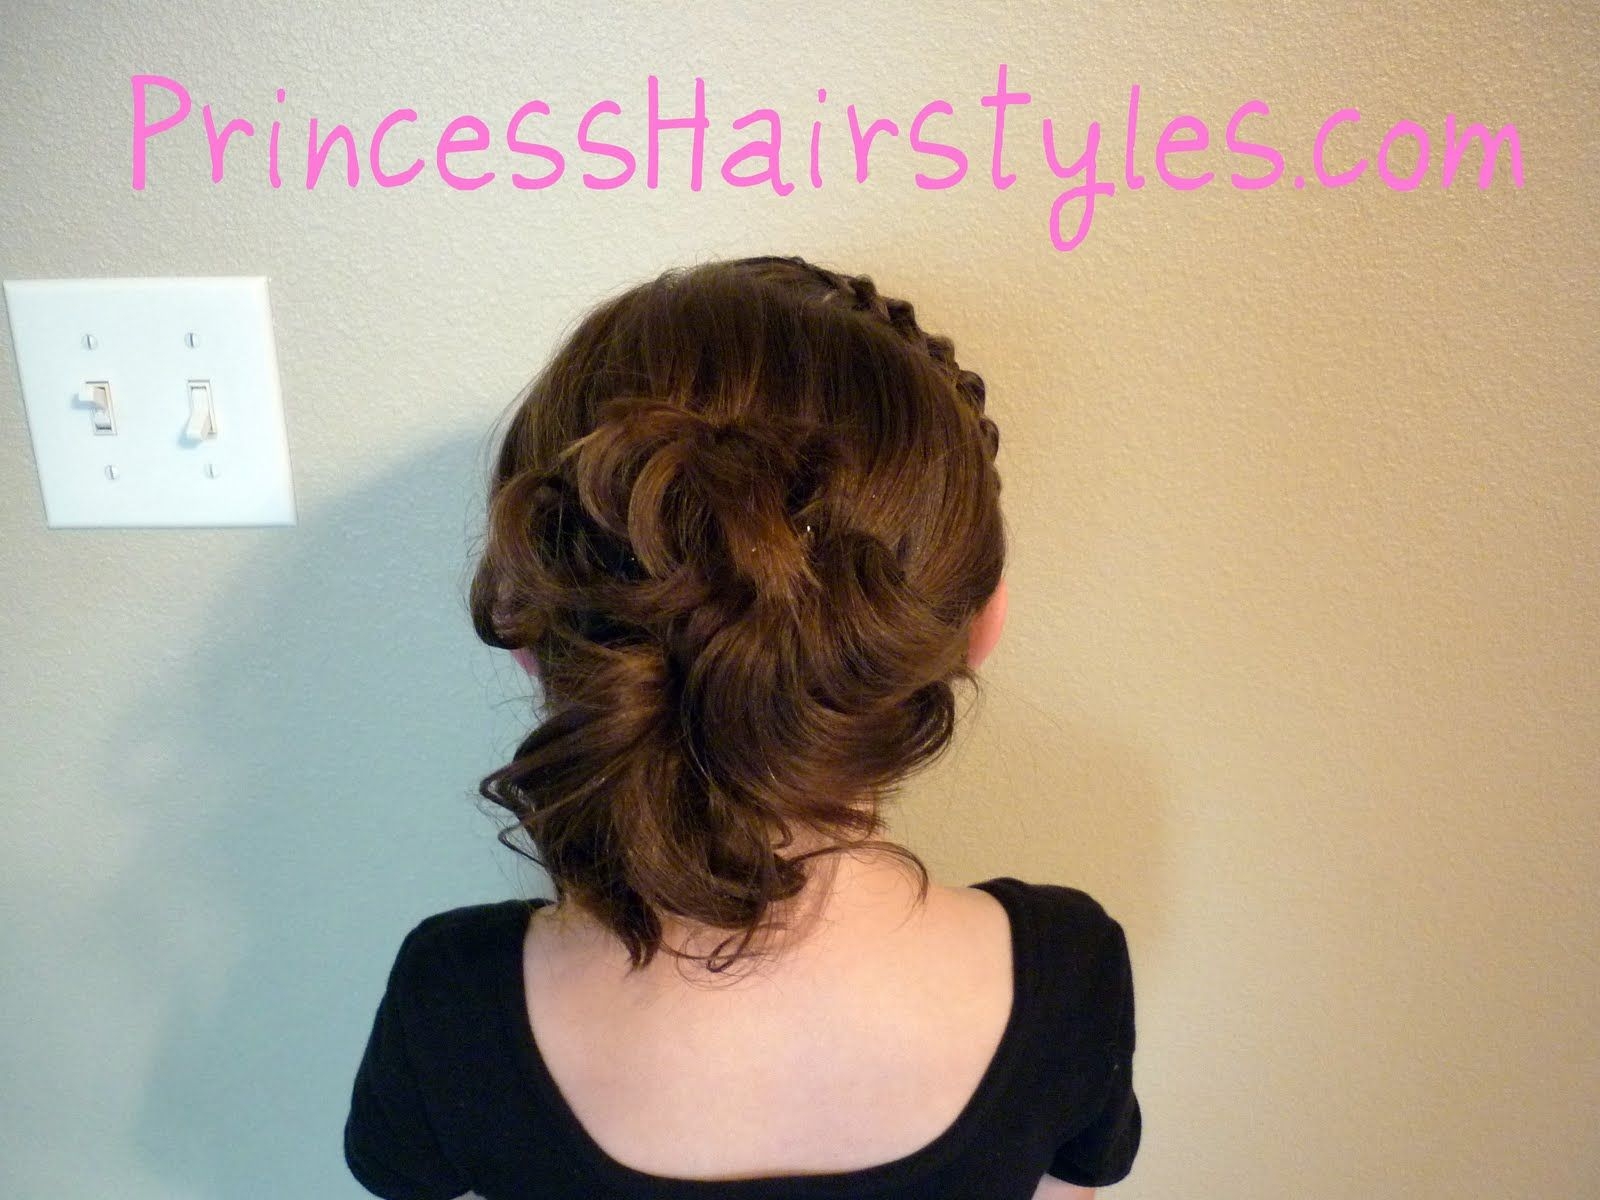 Hairstyles For Girls Princess Hairstyles Prom Hairstyles For Short Hair Messy Bun For Short Hair Princess Hairstyles